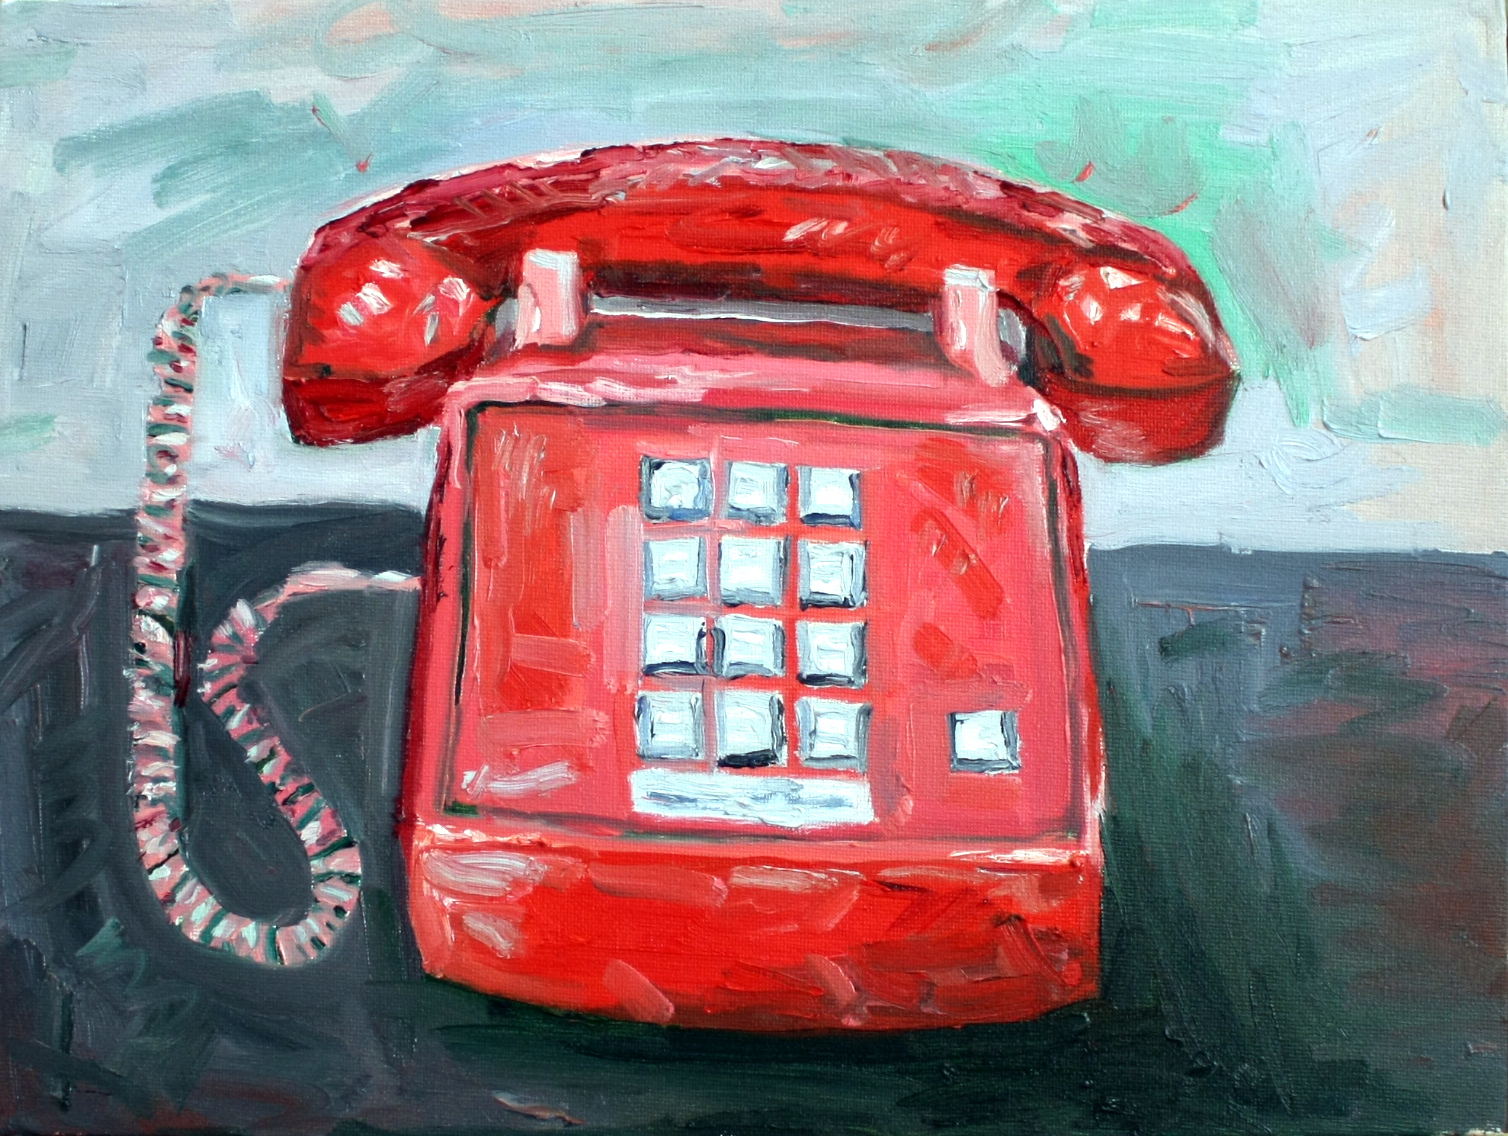 Red Telephone in an Apocalyptic Landscape